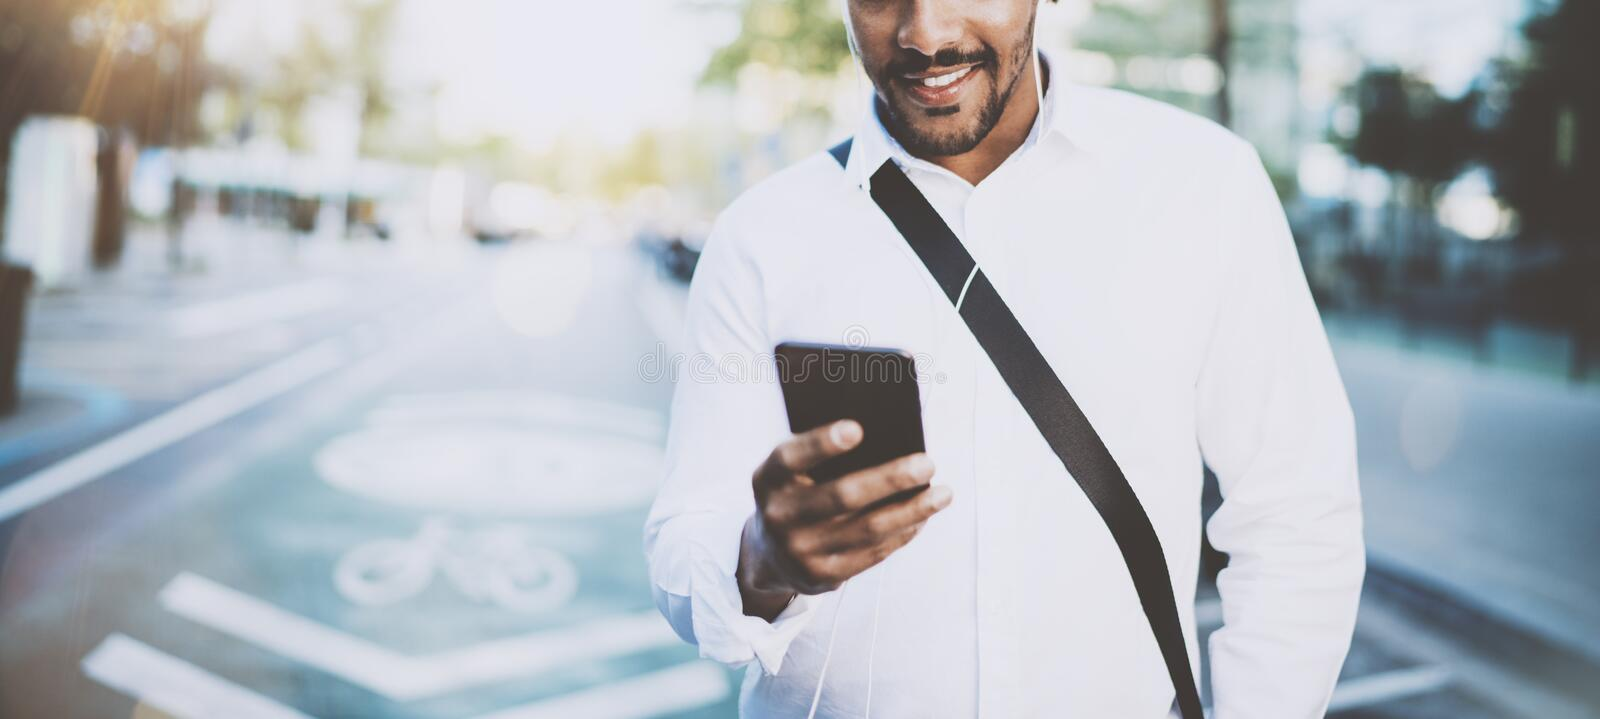 Happy american African man using smartphone outdoor.Portrait of young black cheerful man texting a sms message while royalty free stock photo